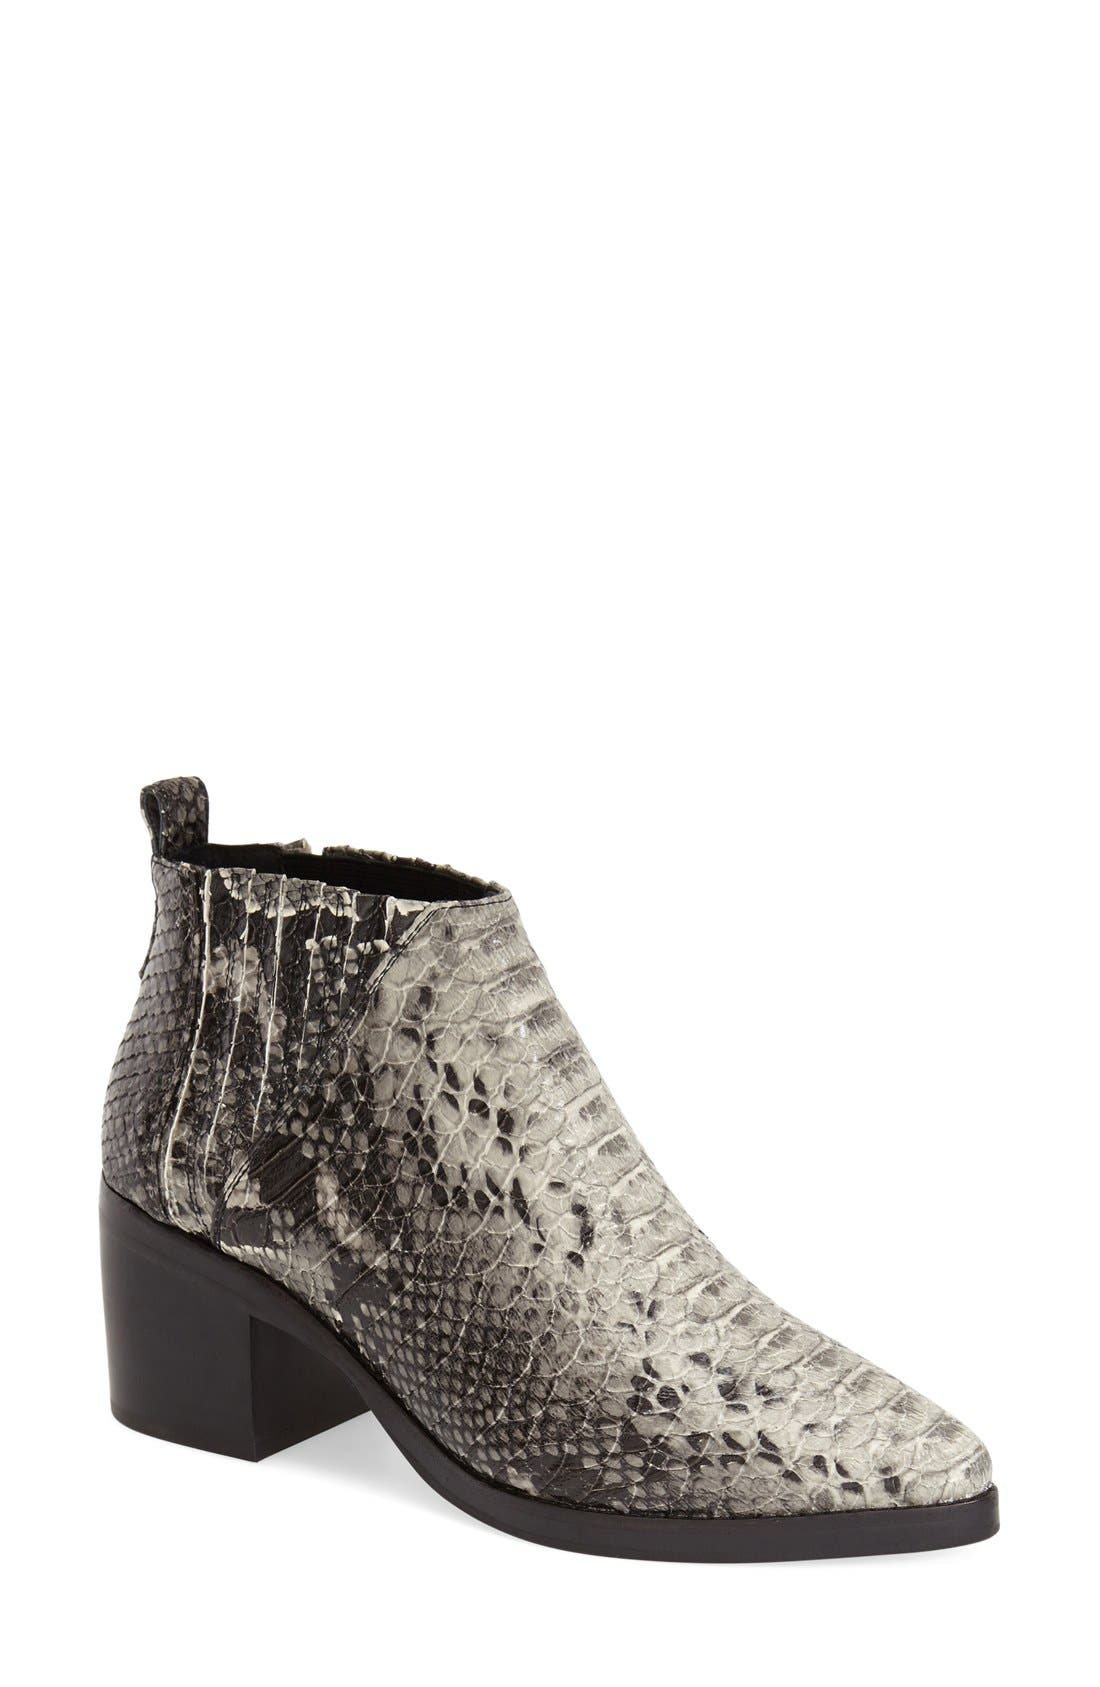 Alternate Image 1 Selected - Jeffrey Campbell 'Weber' Ankle Boot (Women)